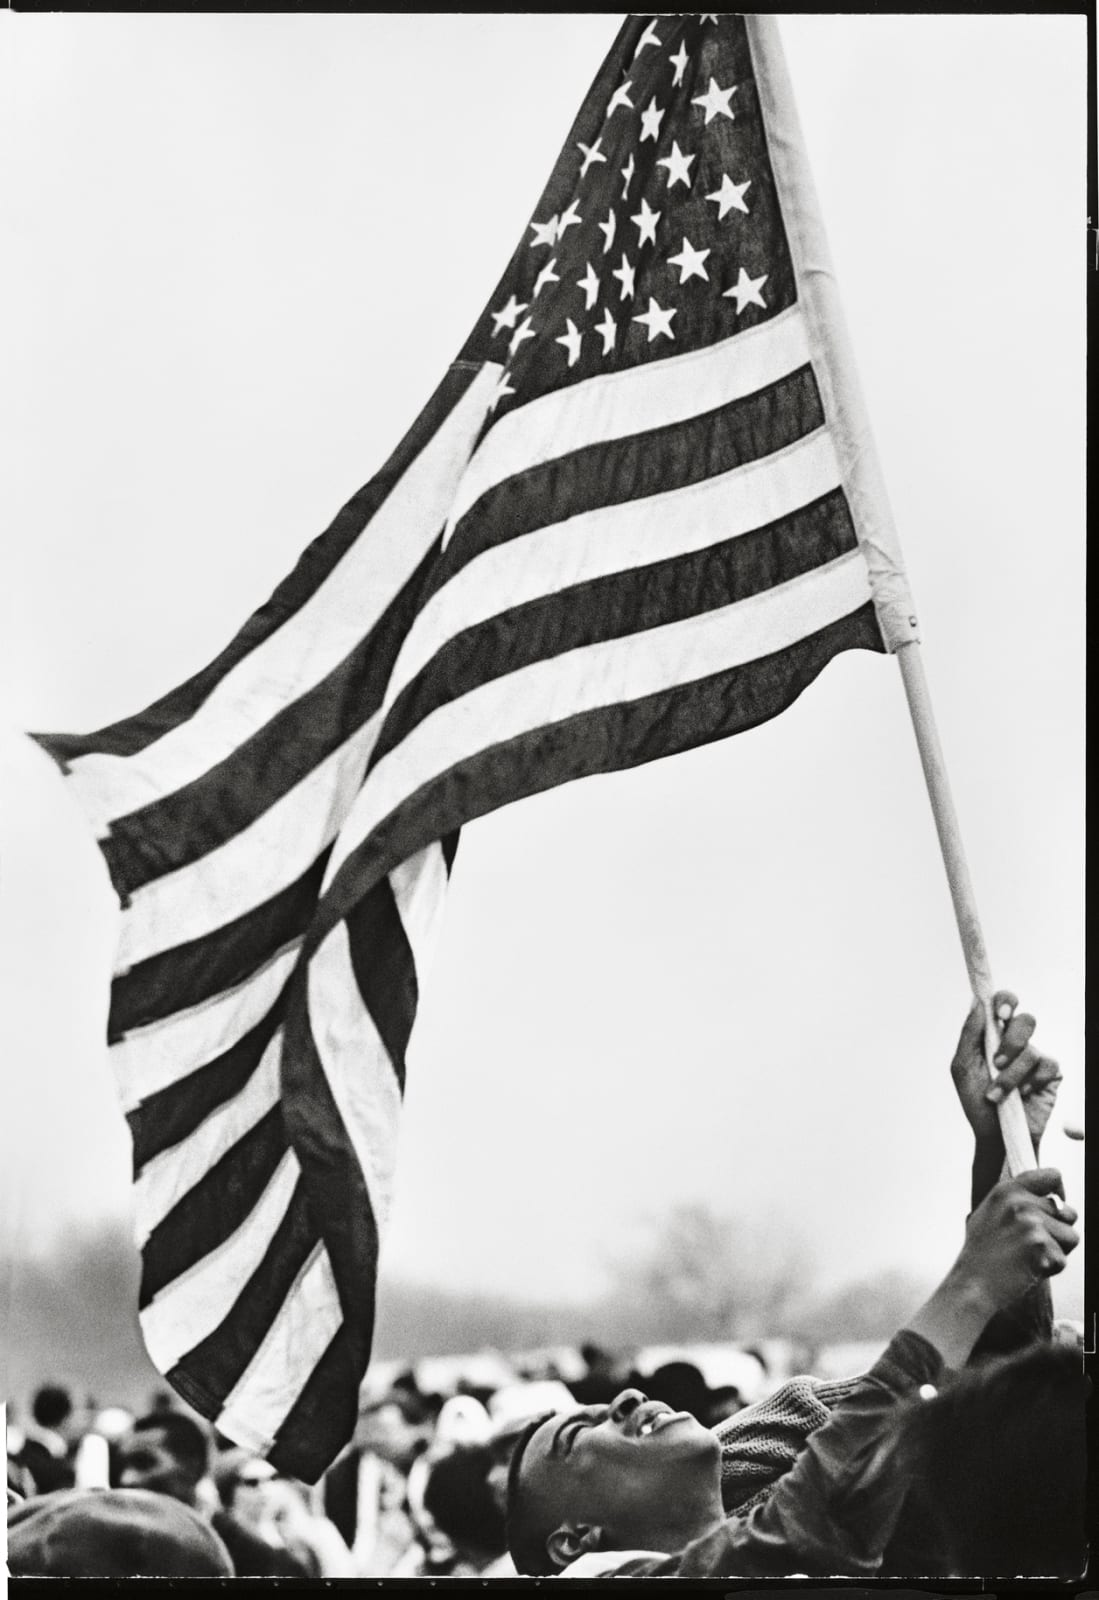 Steve Schapiro Flag, The Selma March, 1965